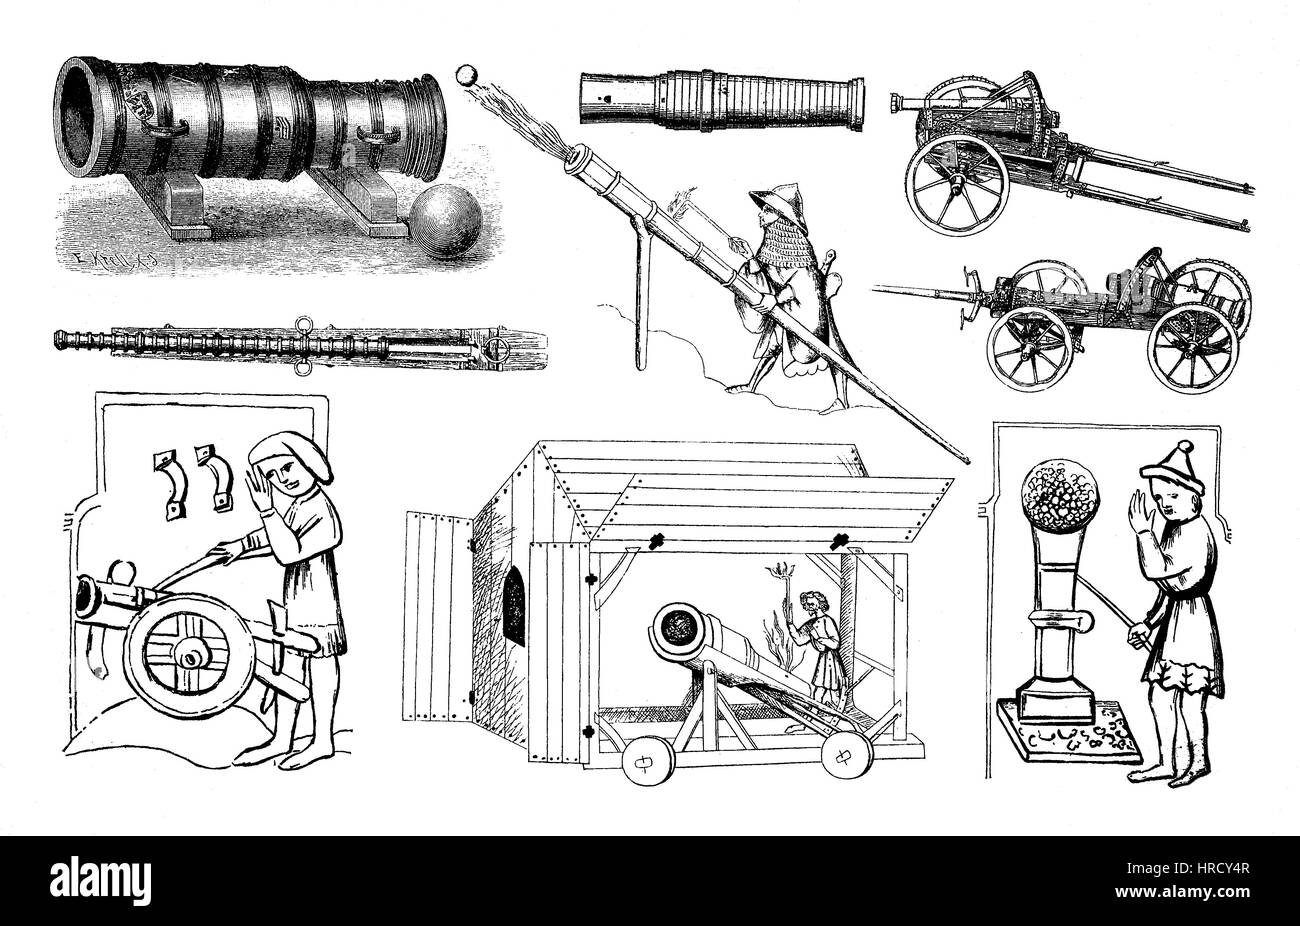 Illustrations of various arms types of the oldest artillery, Germany, cannon, weapon, reproduction of an woodcut - Stock Image